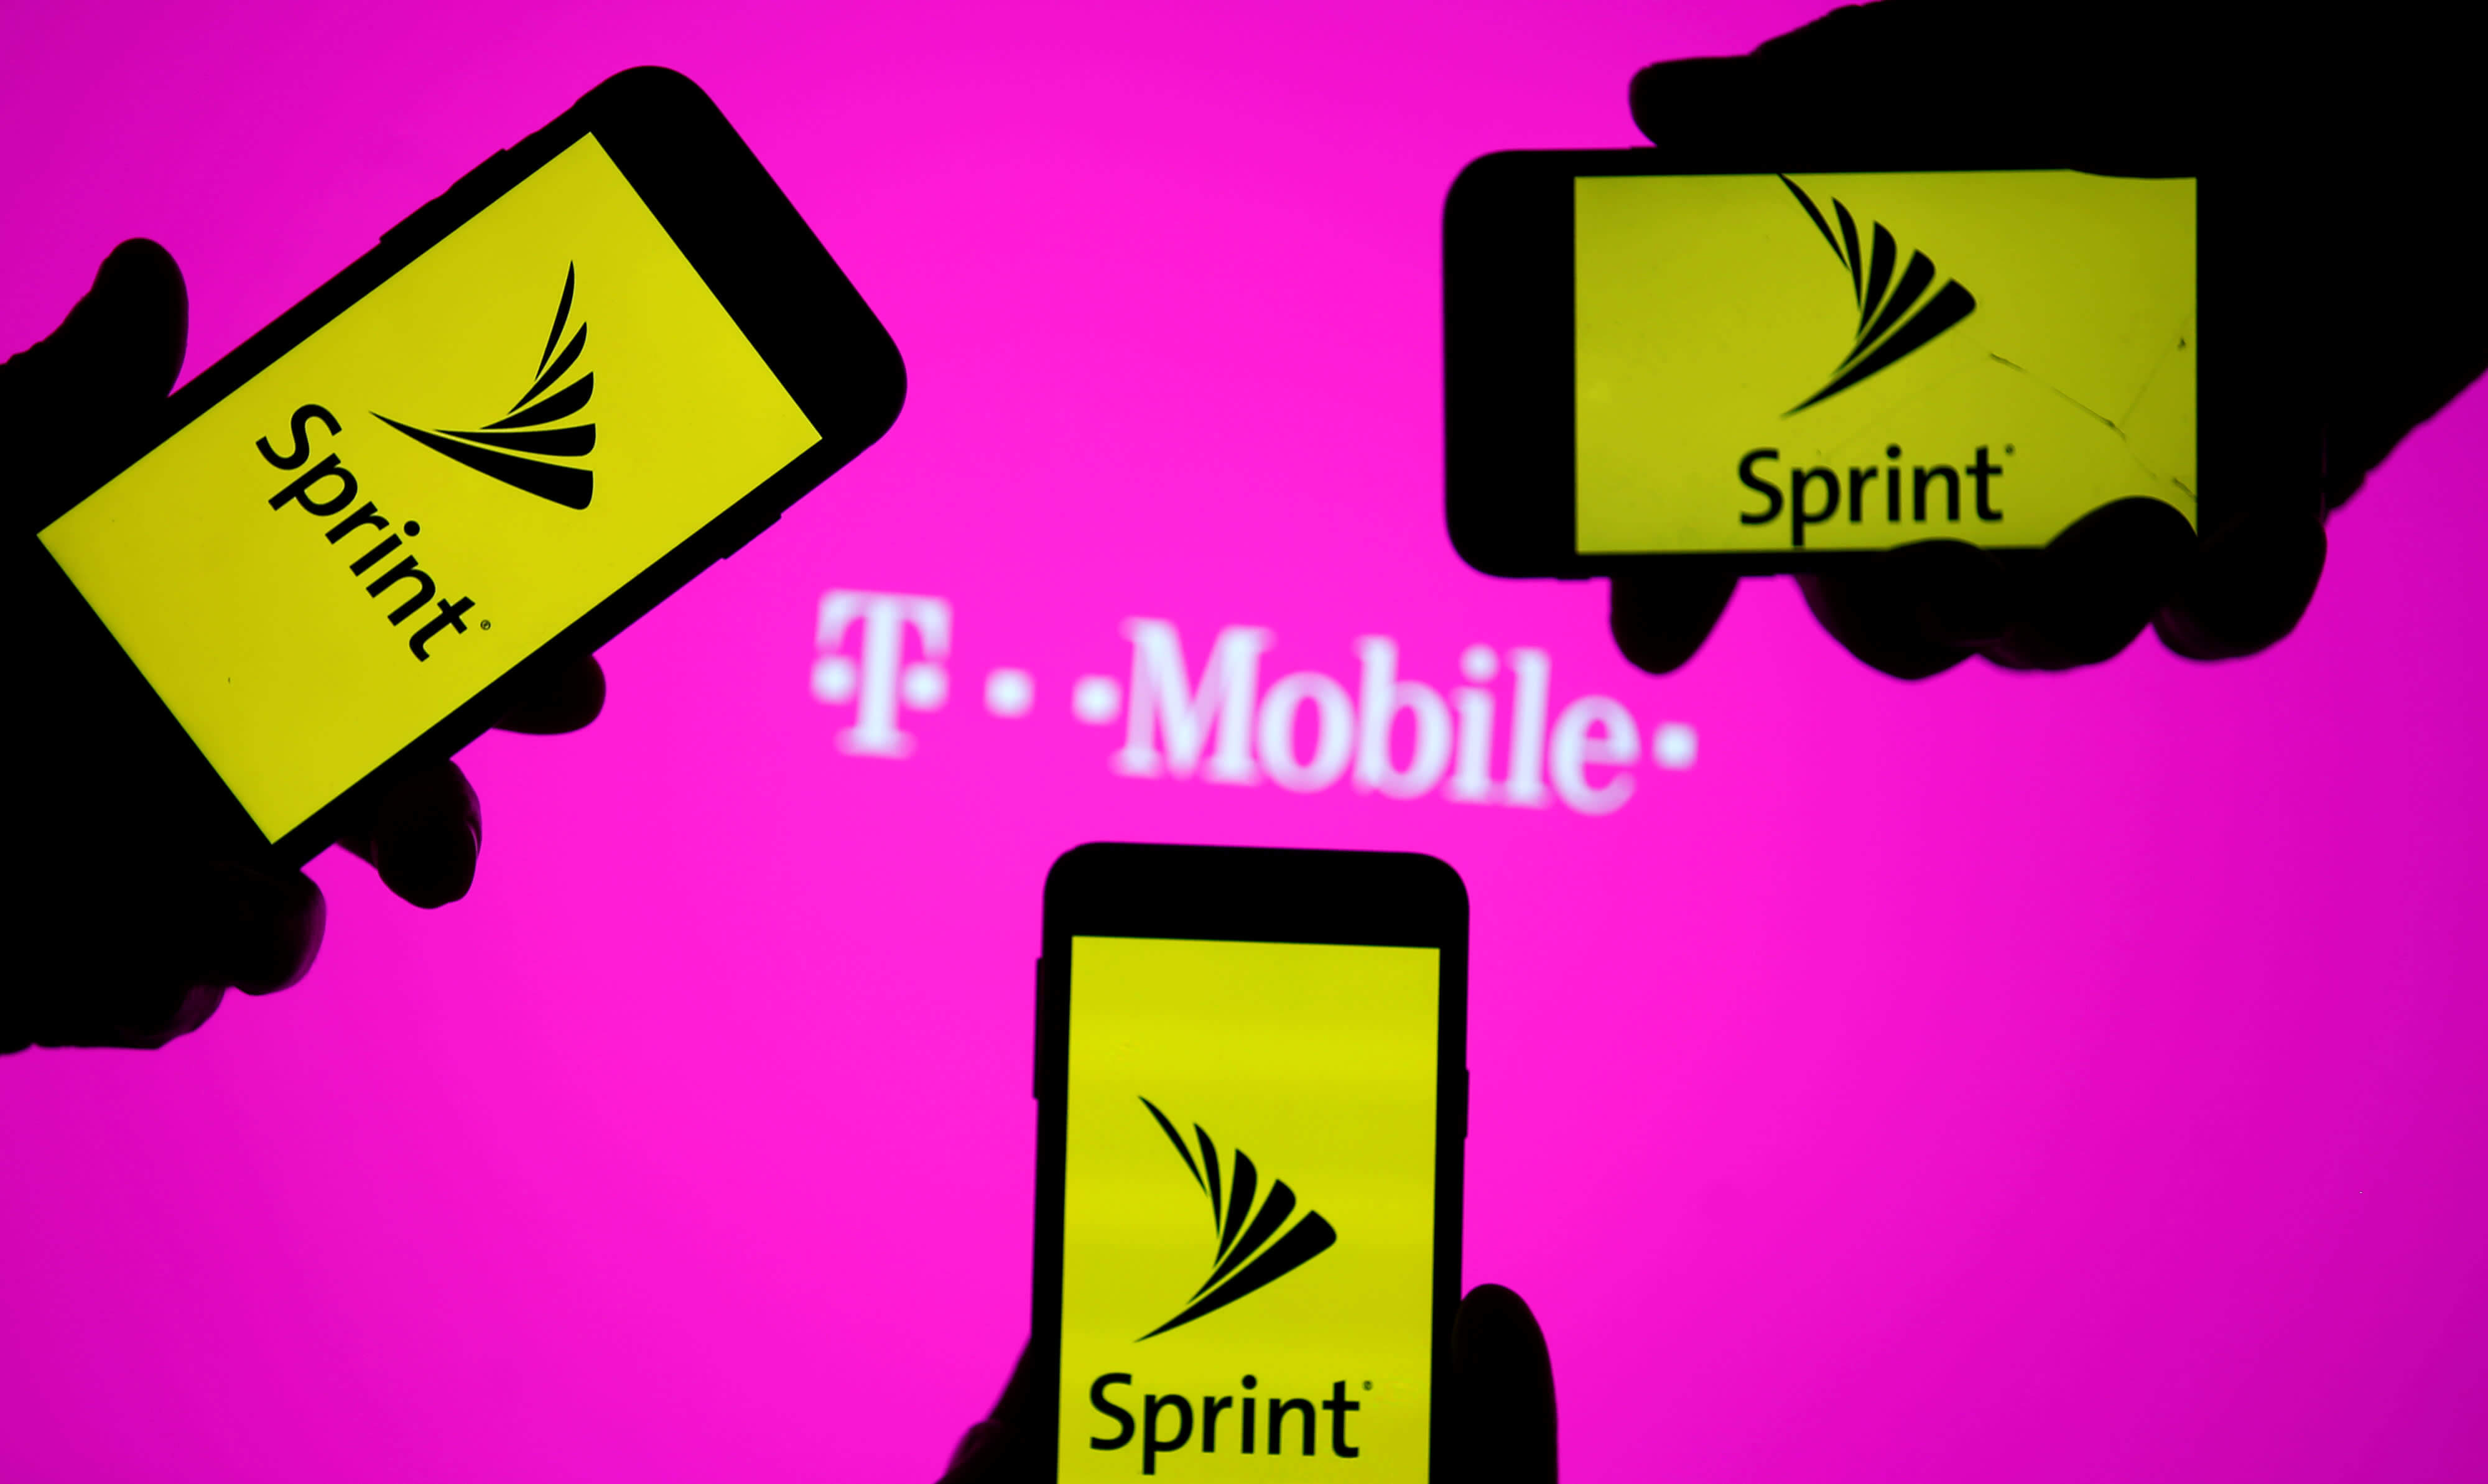 Dish Network may have saved the T-Mobile/Sprint merger